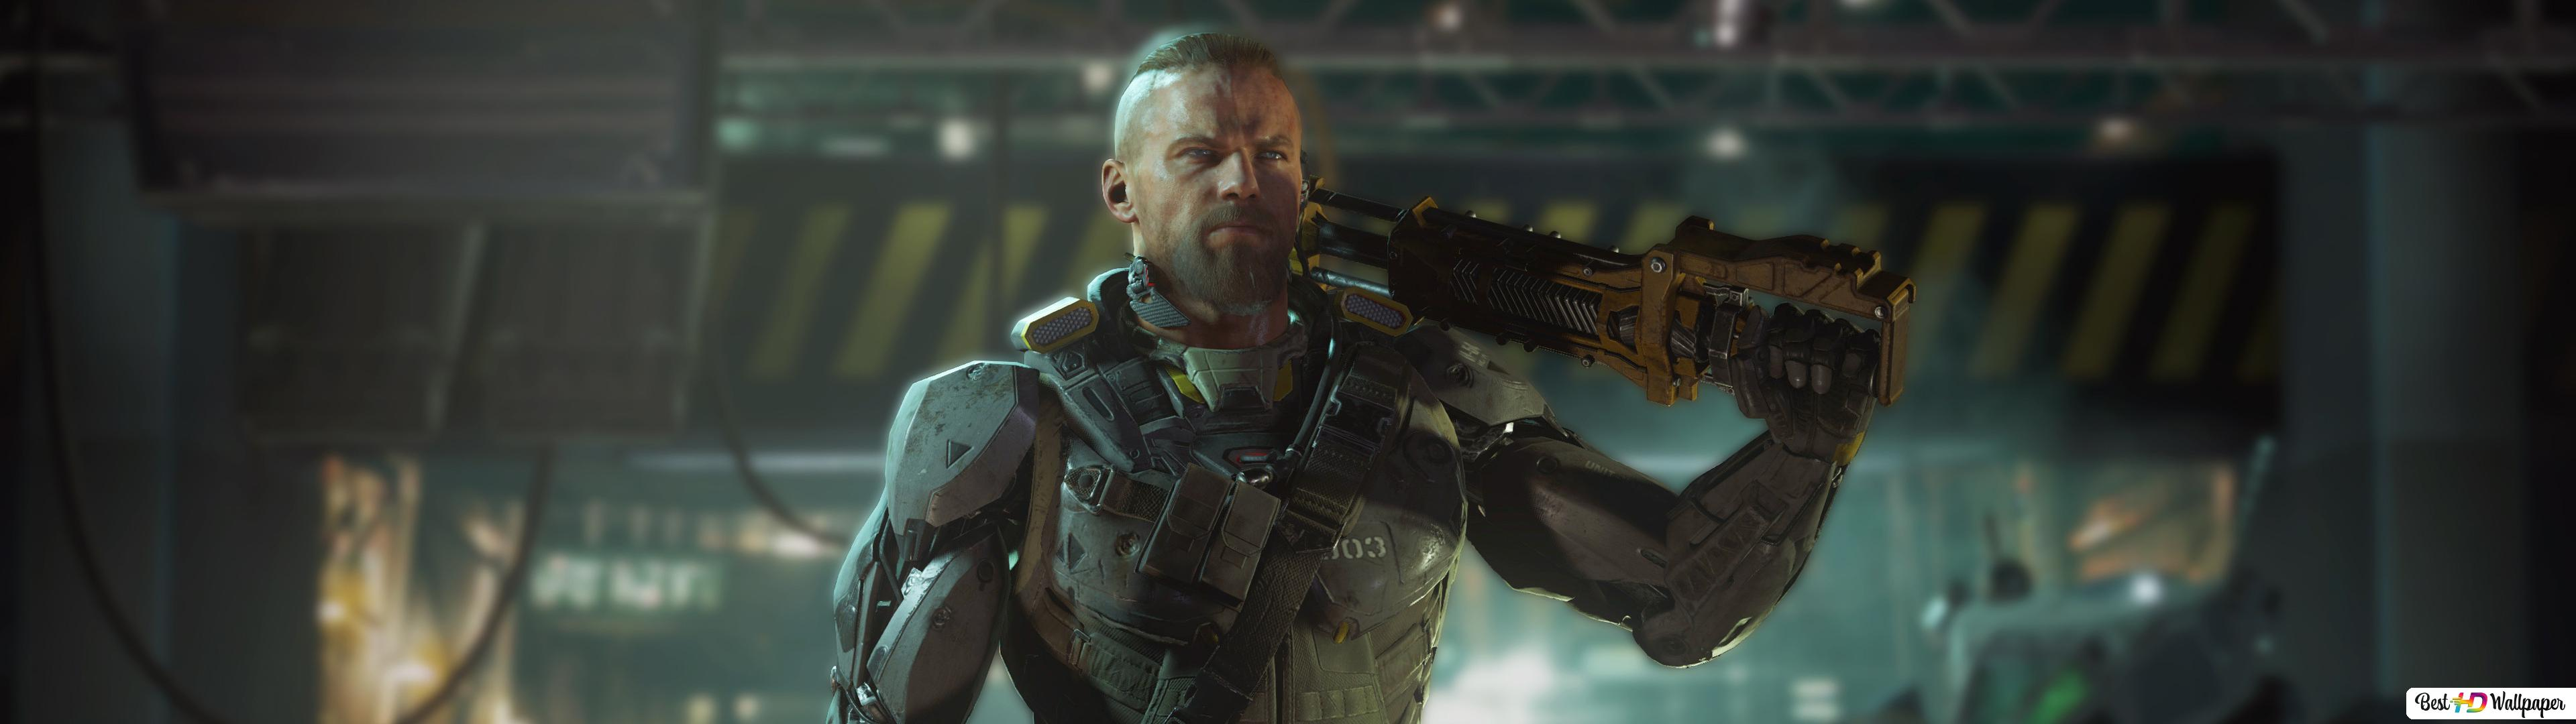 Call Of Duty Black Ops 3 Specialist Hd Wallpaper Download